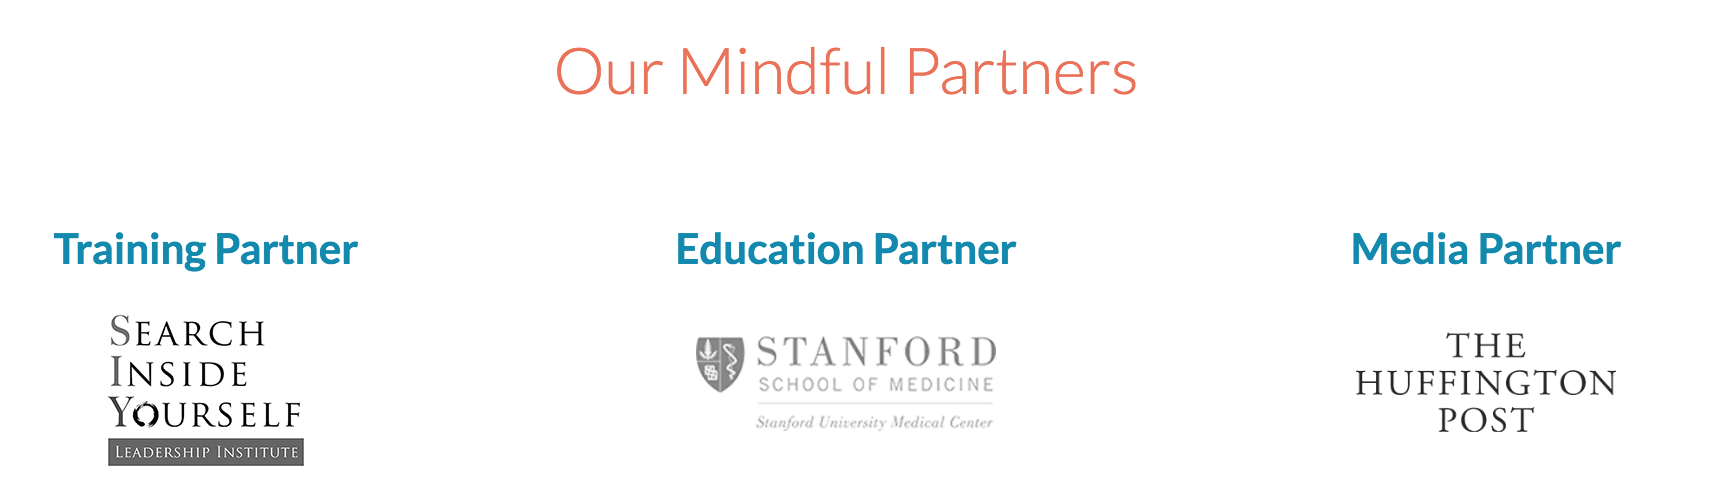 Our Mindful Partners | SIYLI, Stanford, HuffingtonPost